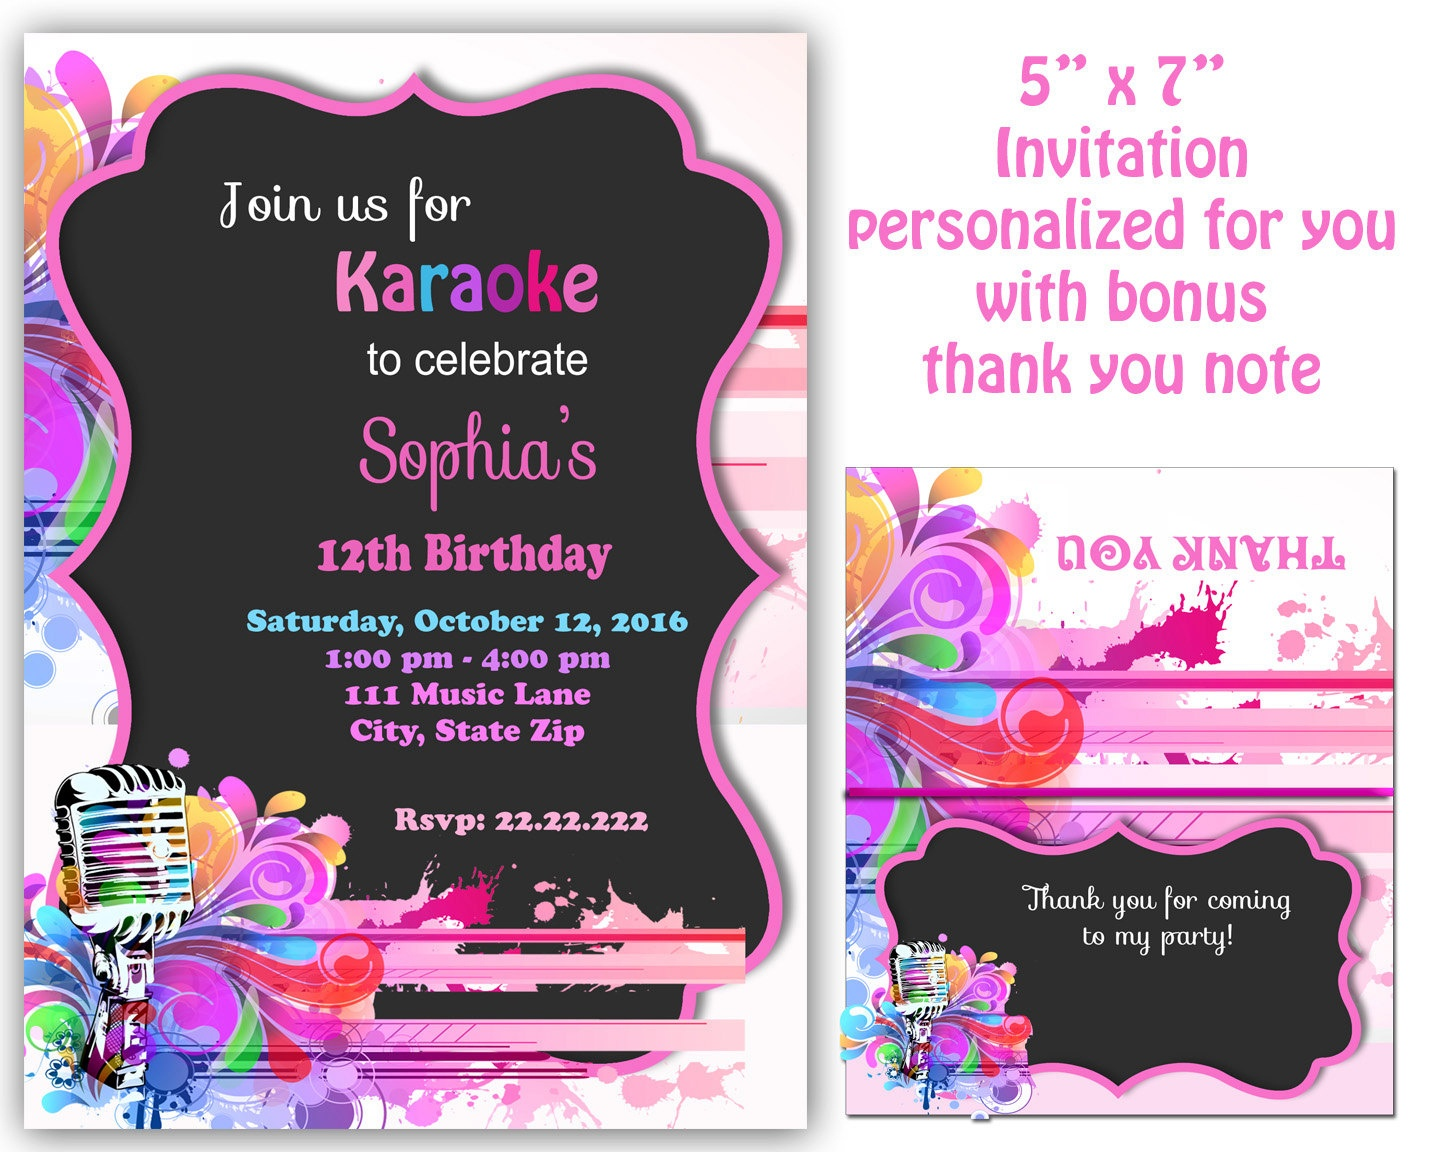 Karaoke Invitations - Kaza.psstech.co - Free Printable Karaoke Party Invitations